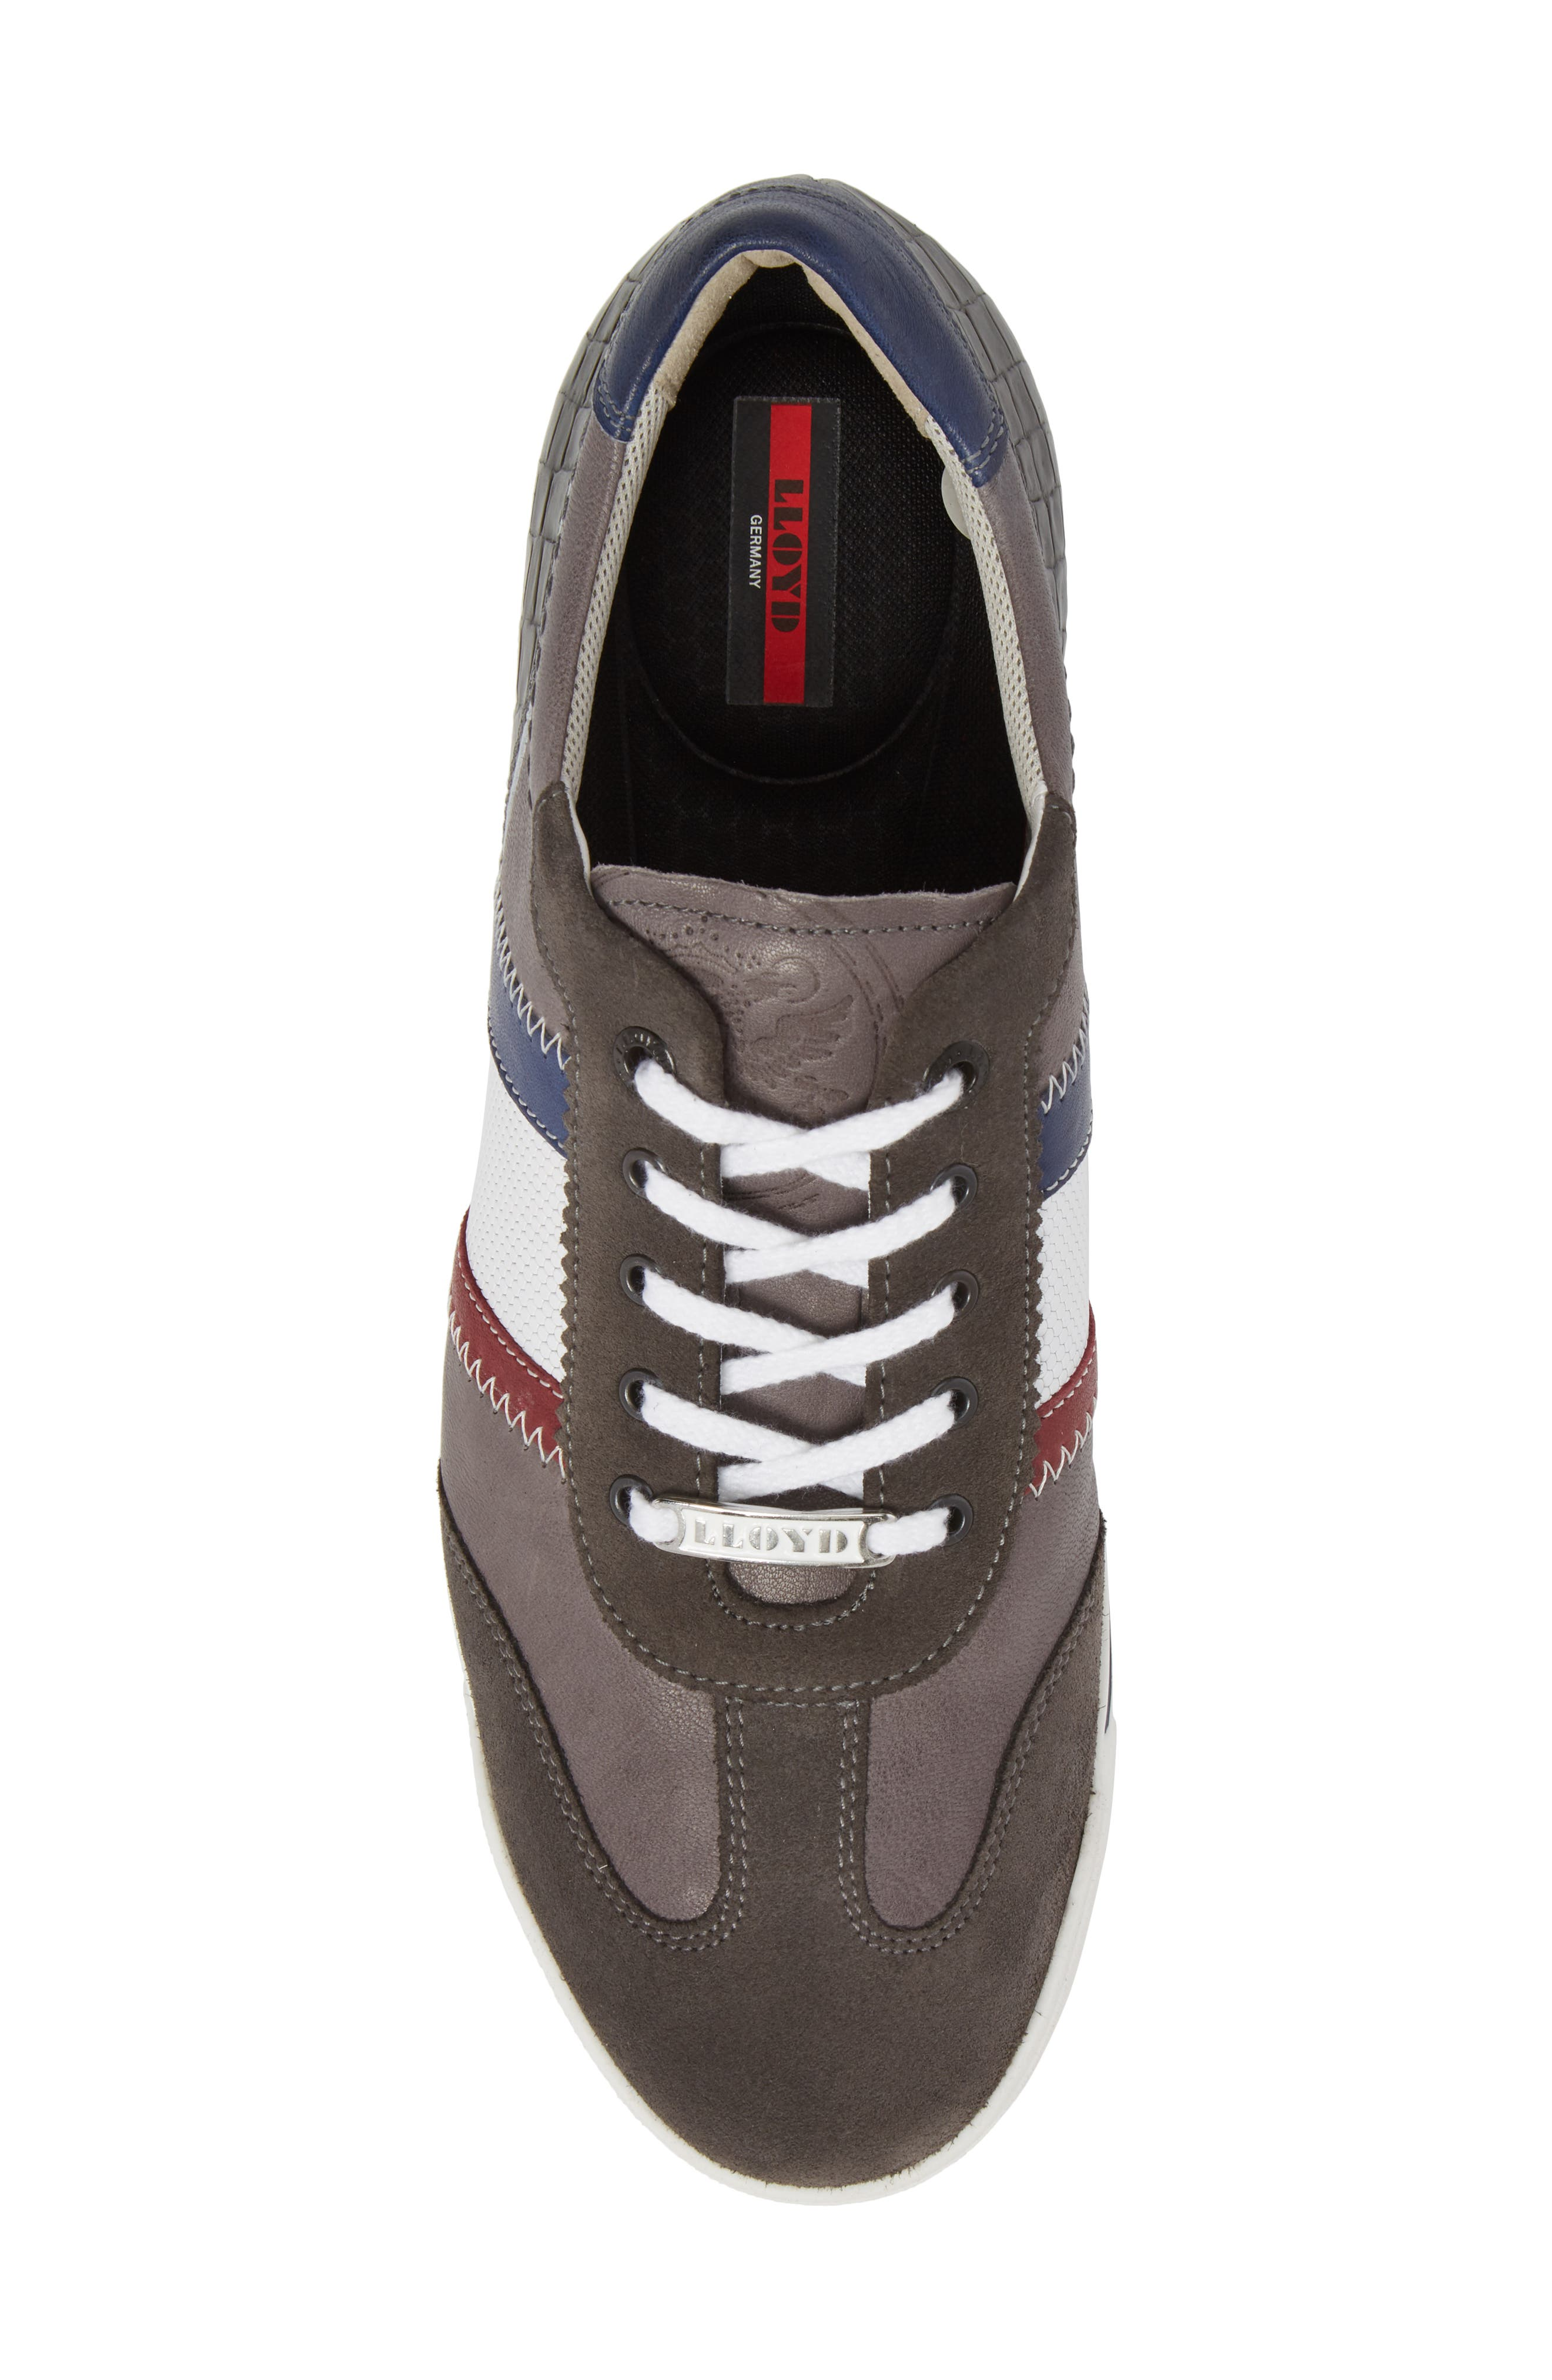 Aaron Low Top Sneaker,                             Alternate thumbnail 5, color,                             Grey Leather/ Suede